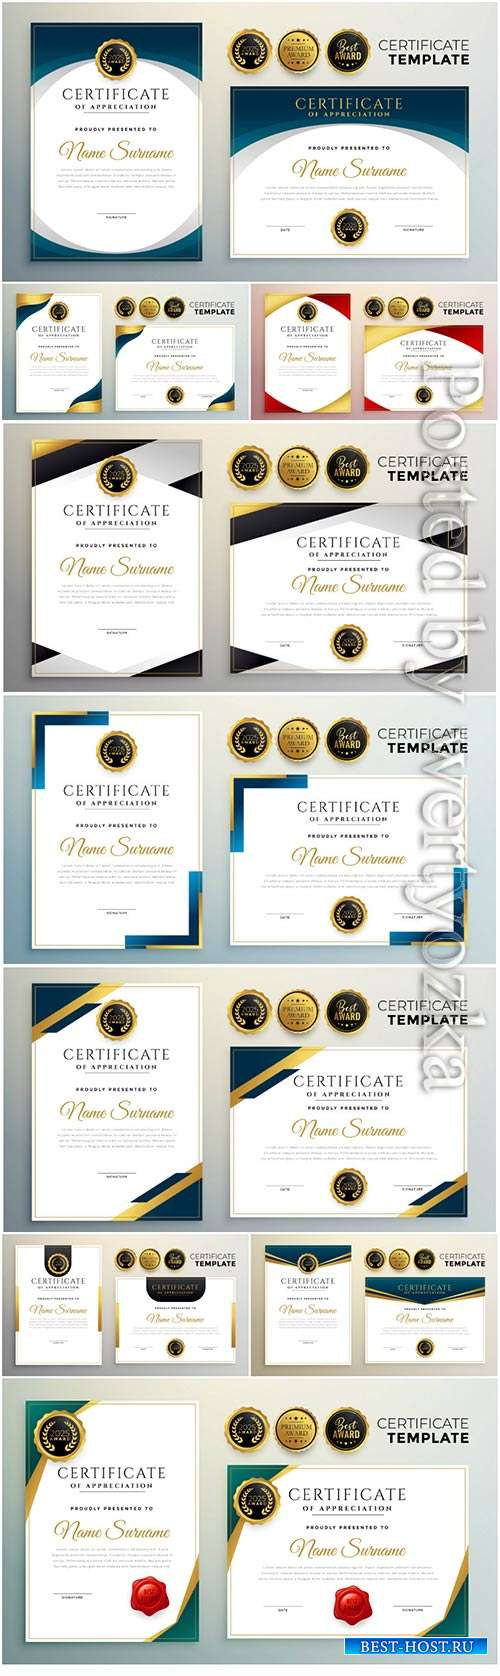 Creative certificate of appreciation template modern design